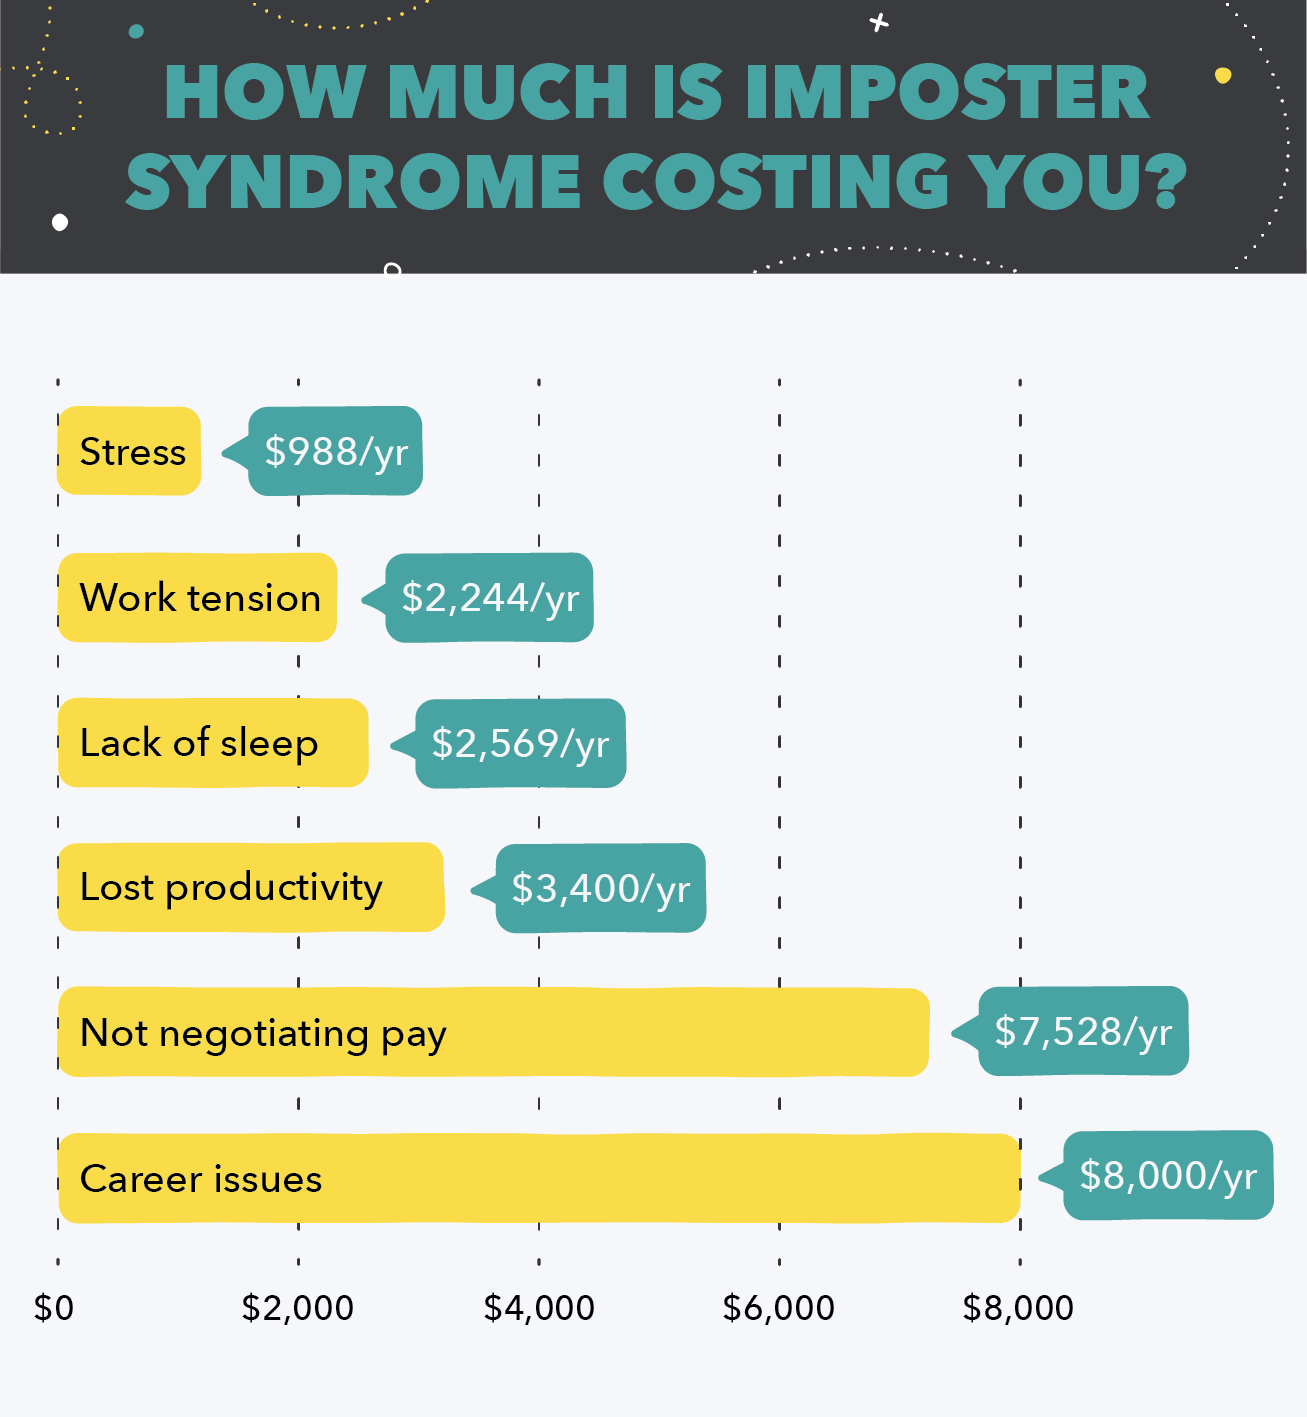 How much is imposter syndrome costing you?